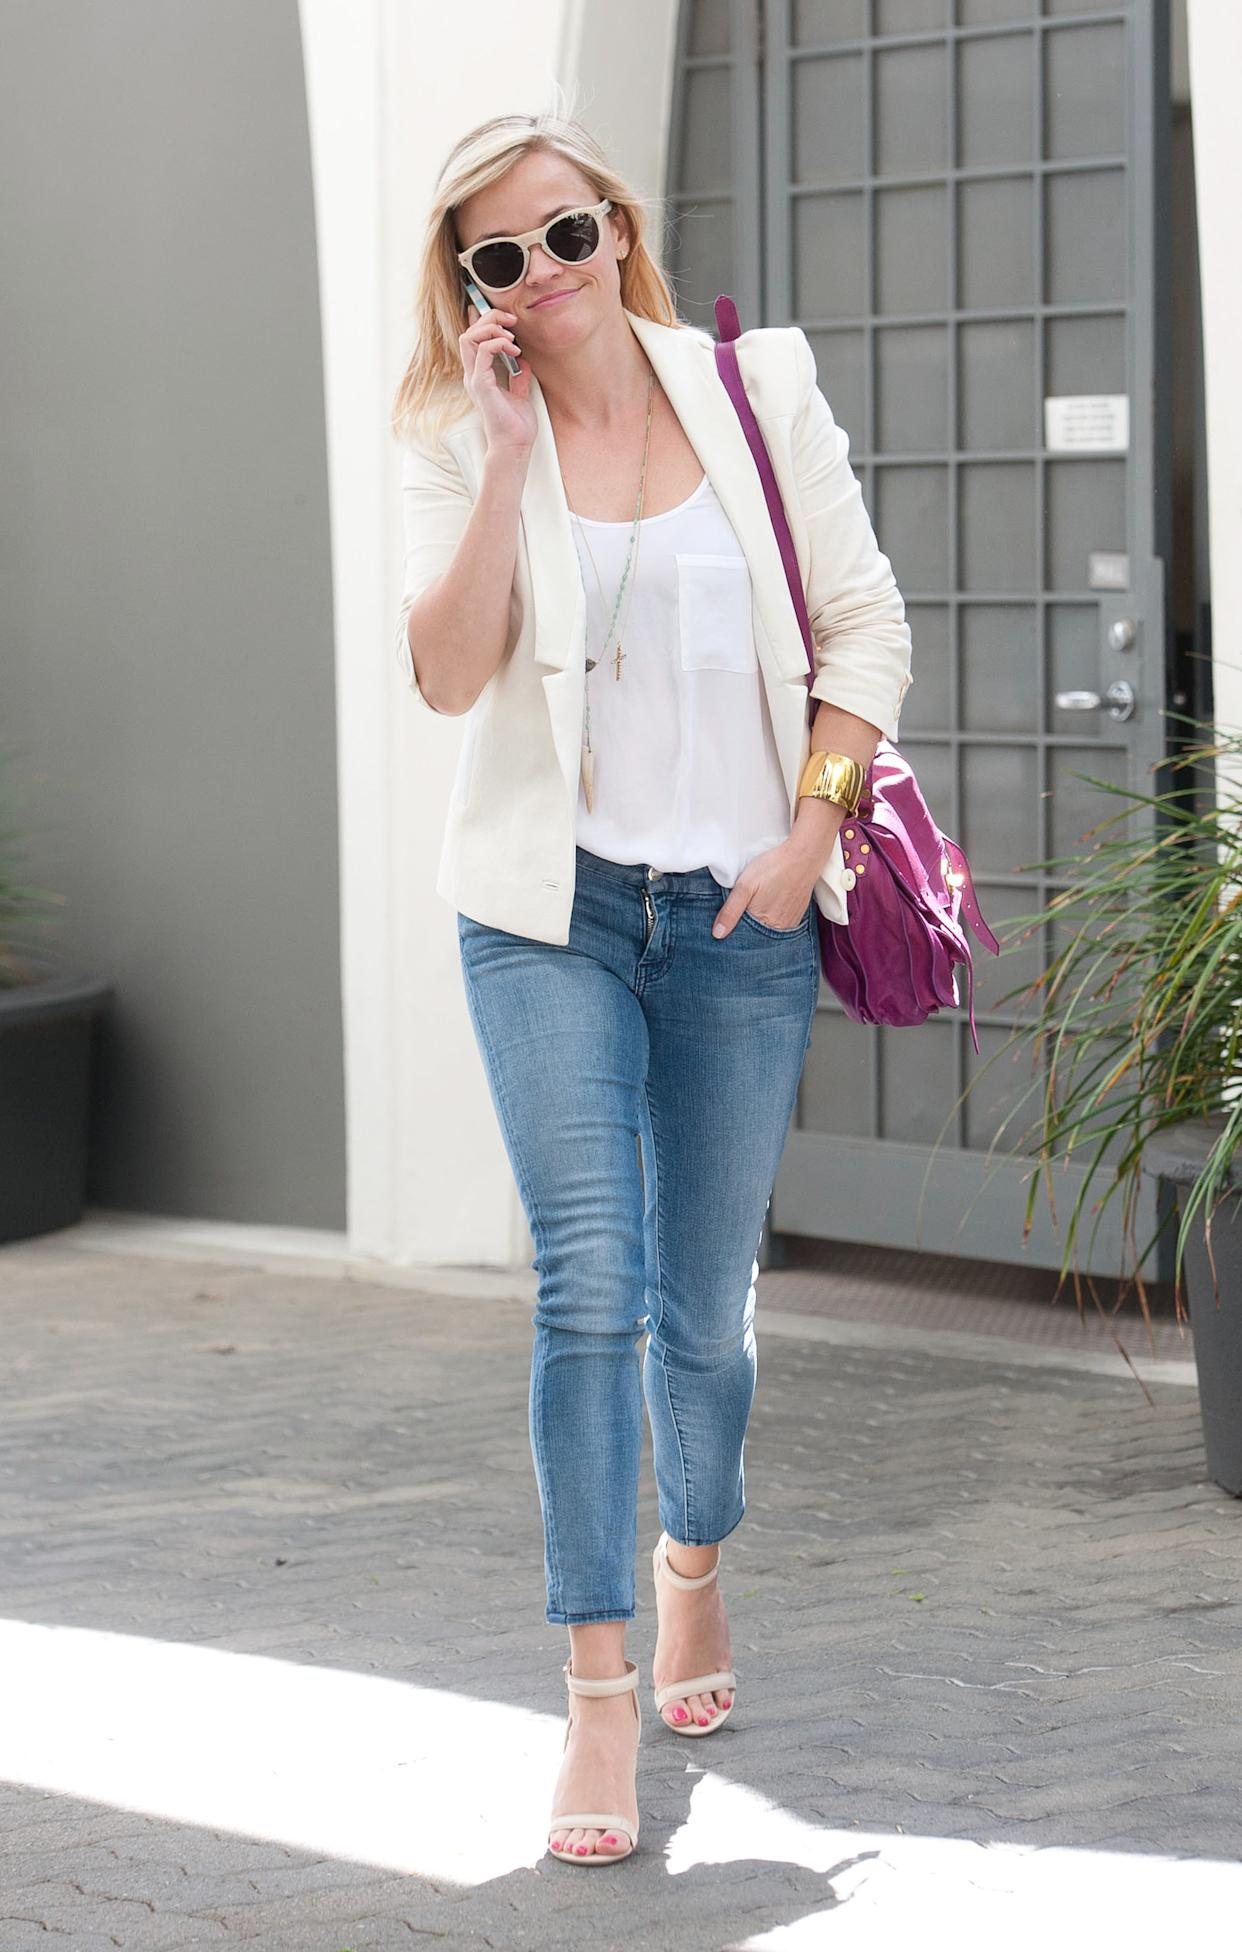 Reese Witherspoon out and about in Los Angeles